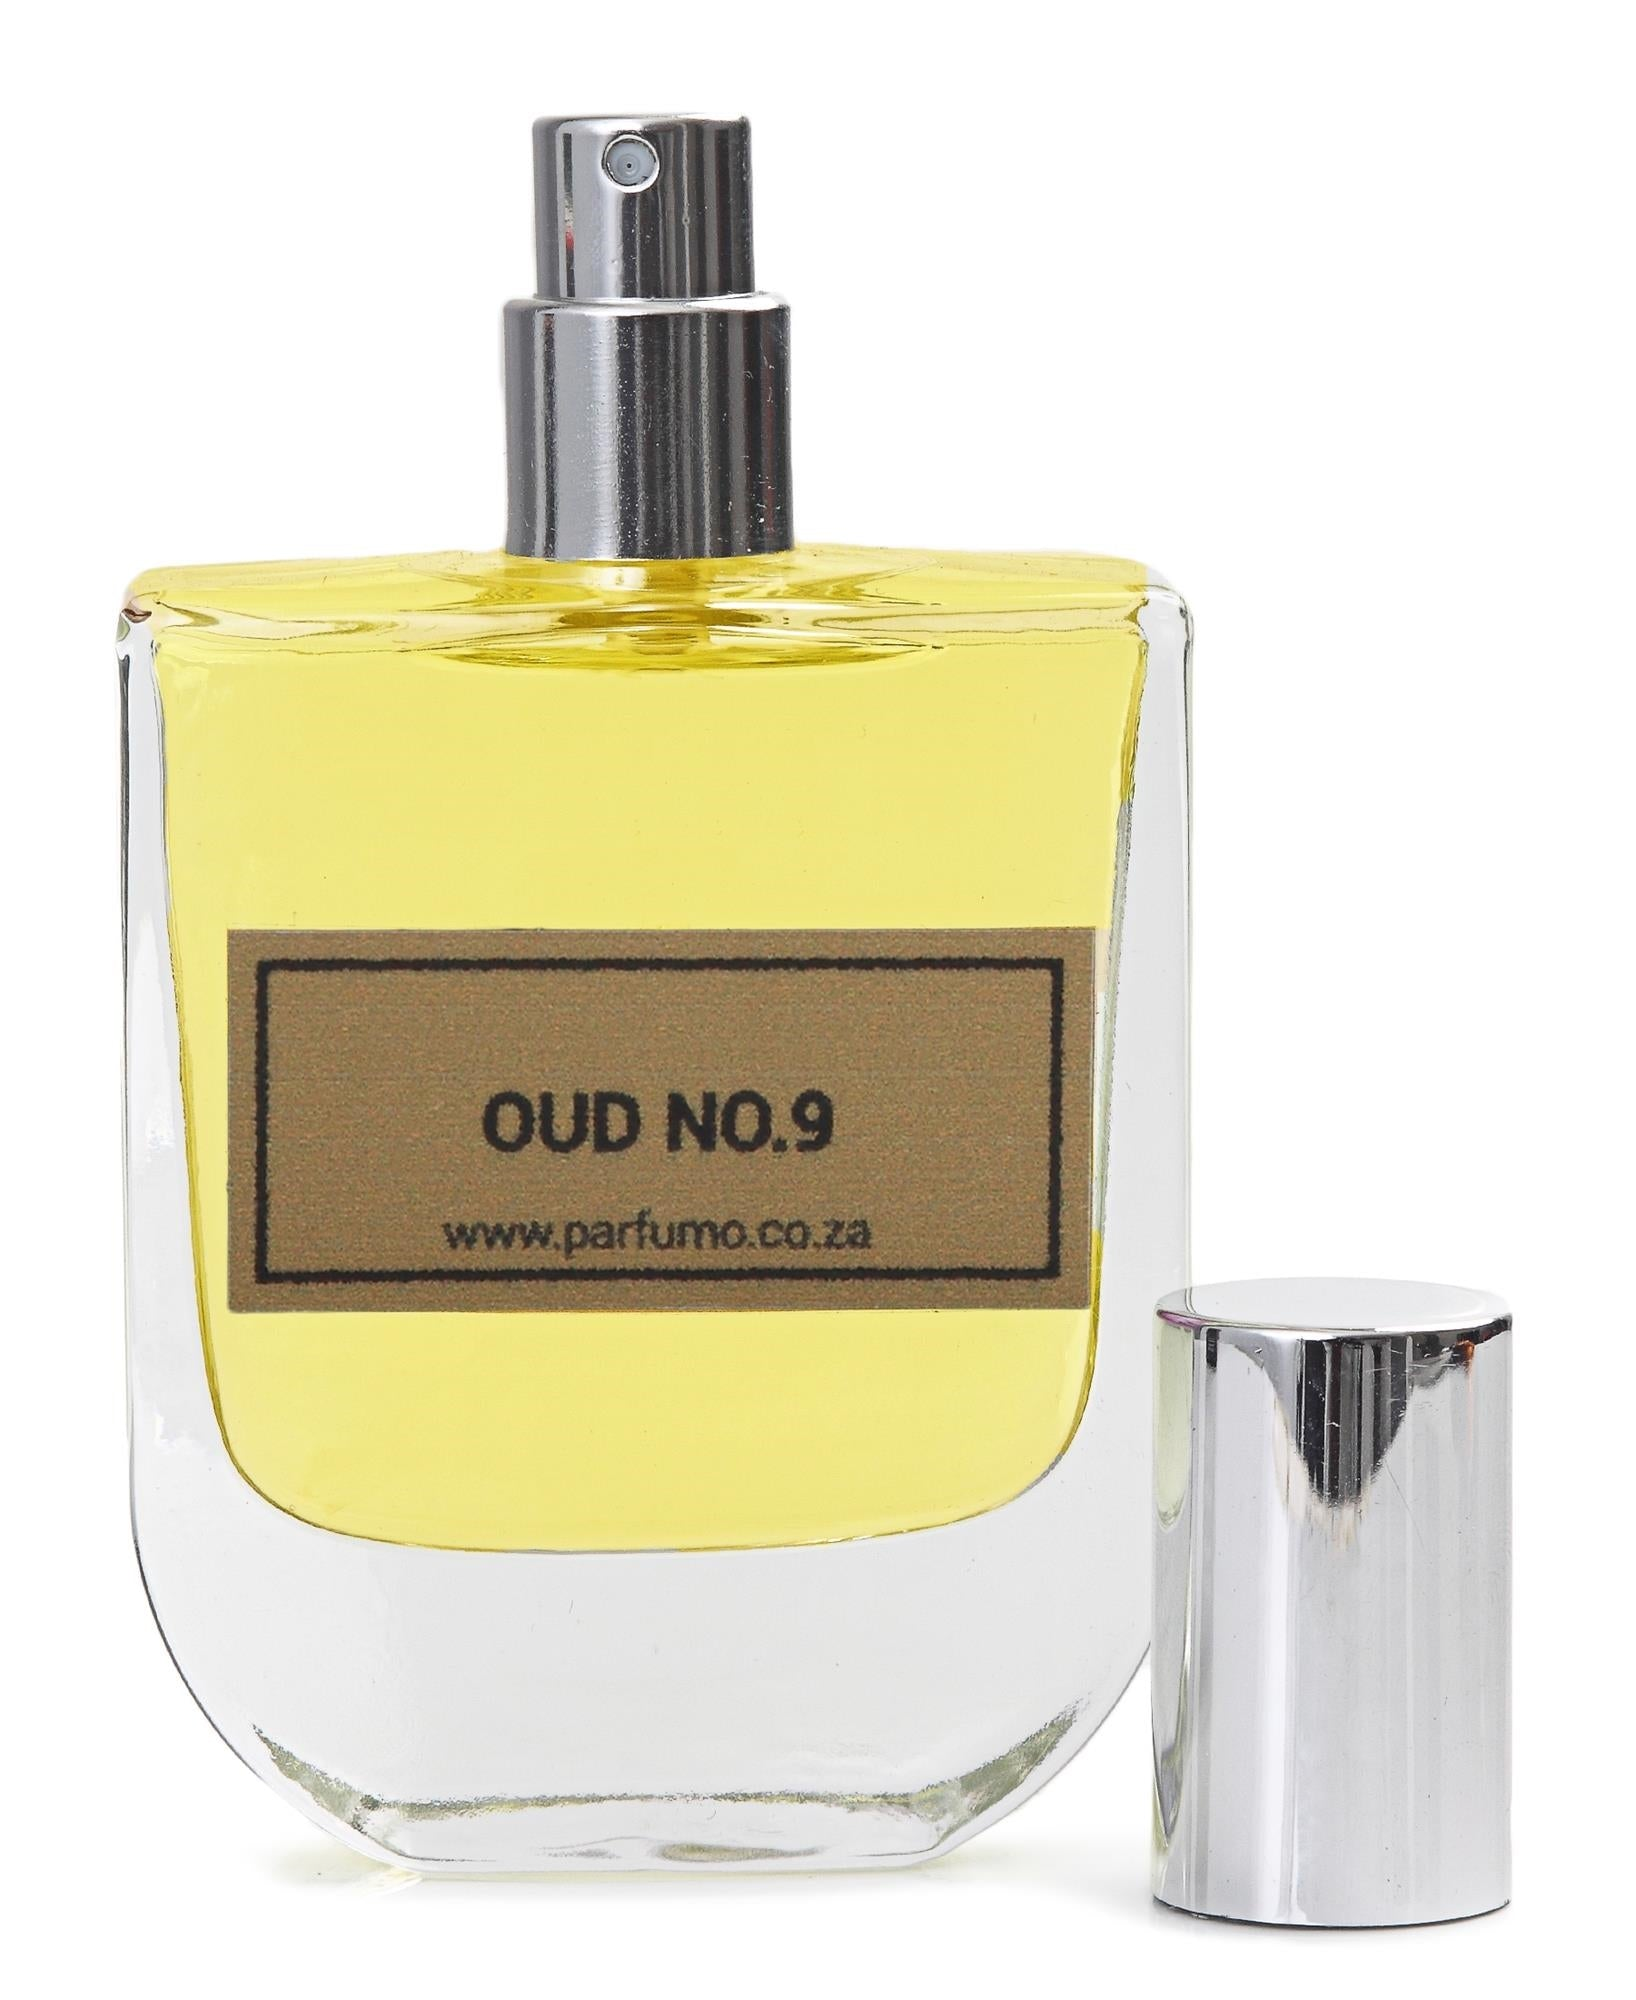 Oud No.9 Inspired By Oud Wood Tom Ford - Oud No.9